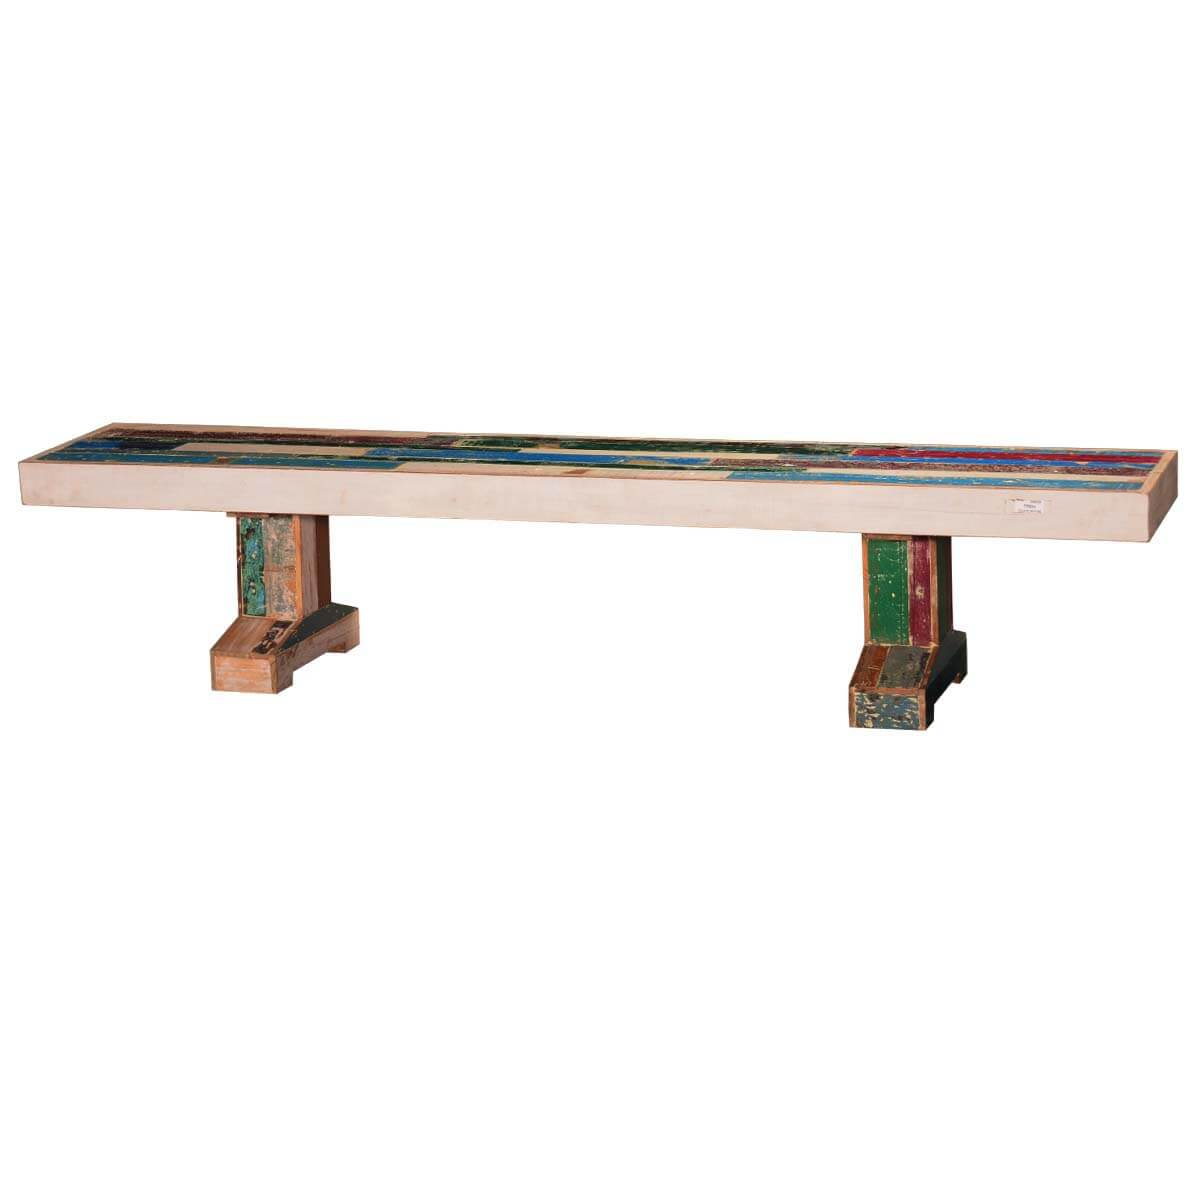 Primary Colors Distressed 87 Reclaimed Wood 2-Pedestal Bench